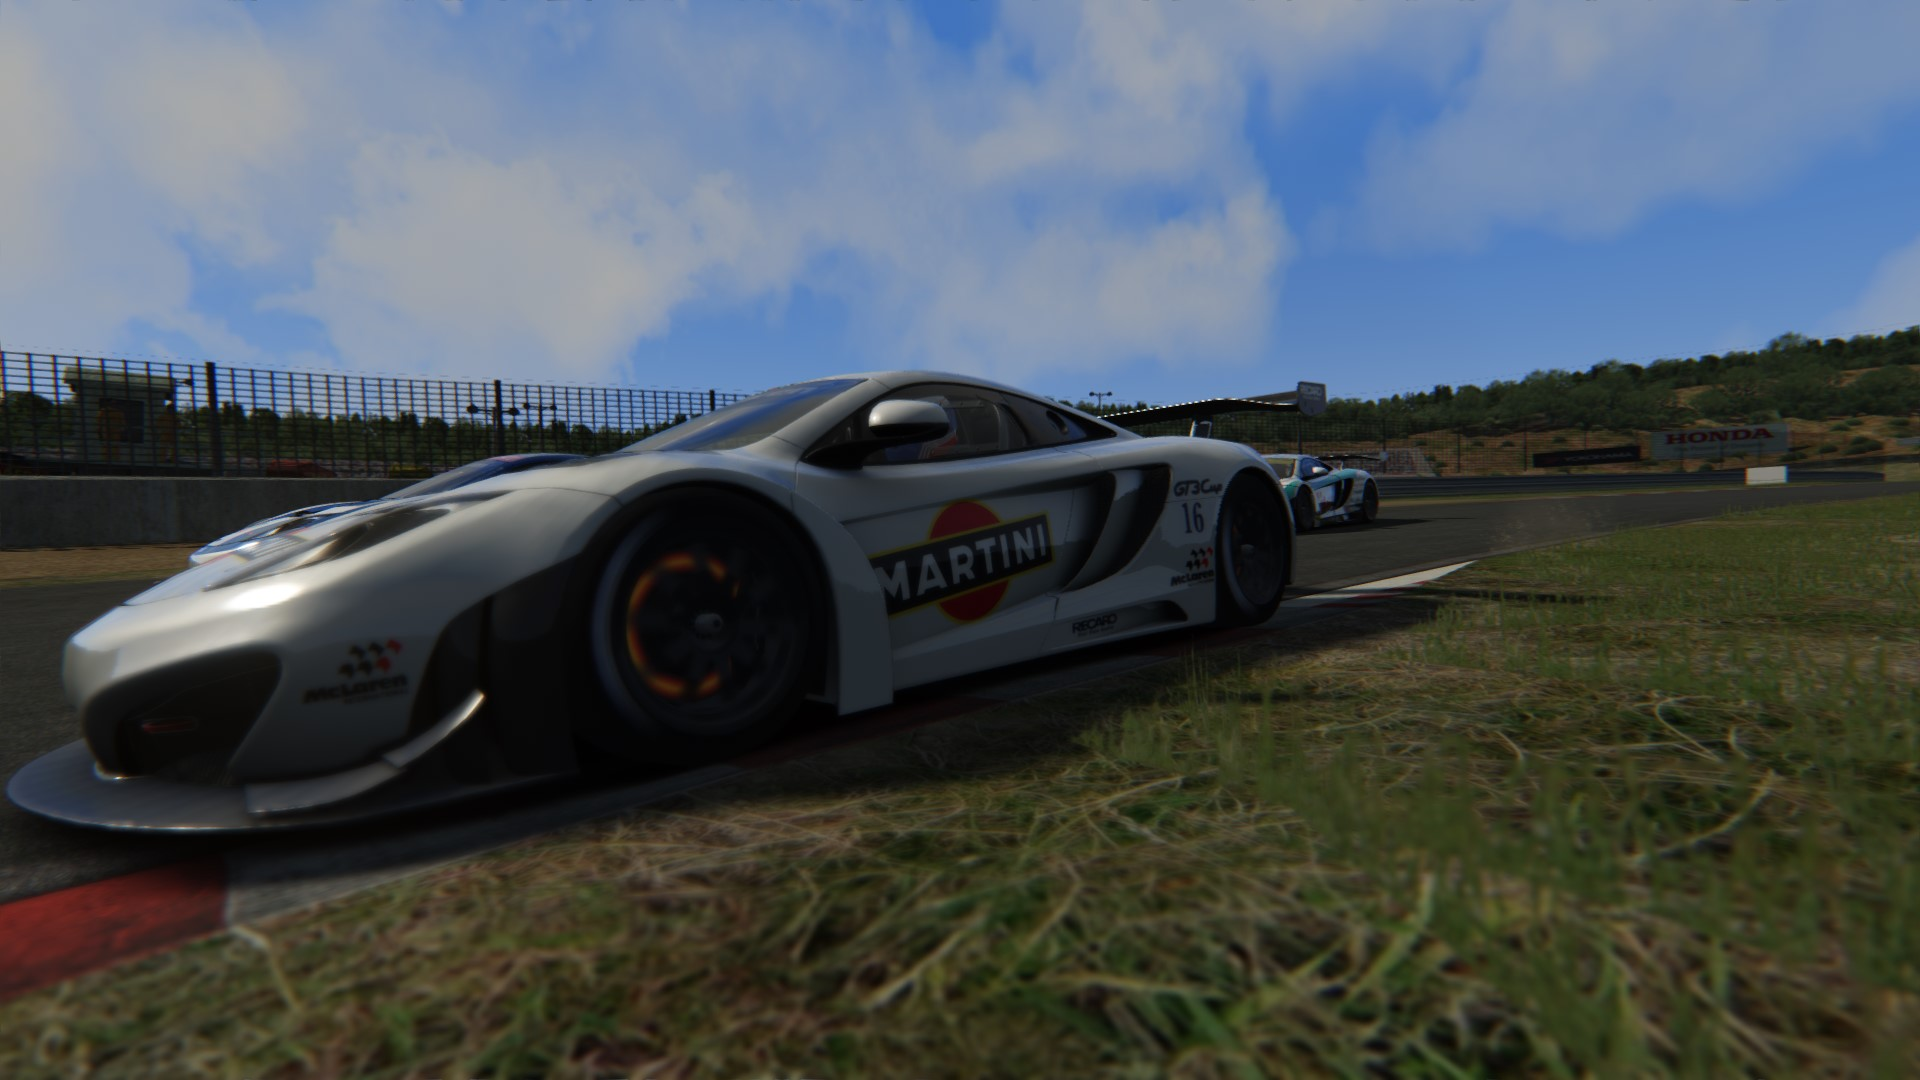 Screenshot_mclaren_mp412c_gt3_sportsland_sugo_7-4-116-10-19-4.jpg